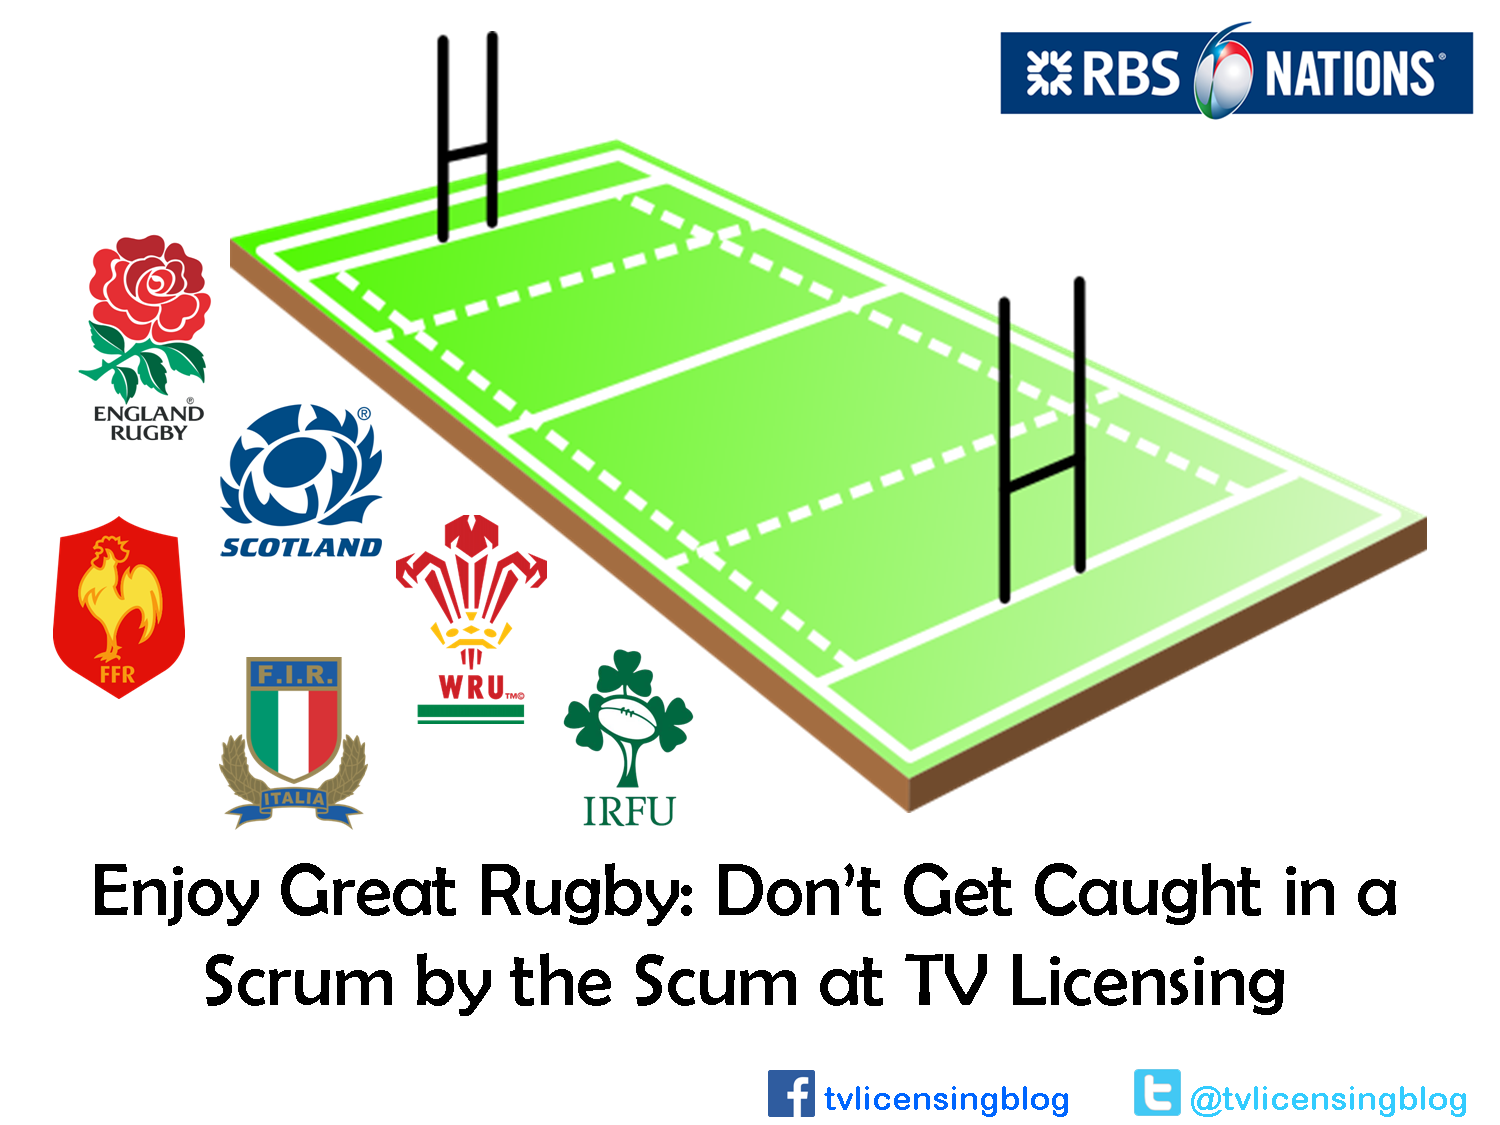 TV Licensing Six Nations Rugby